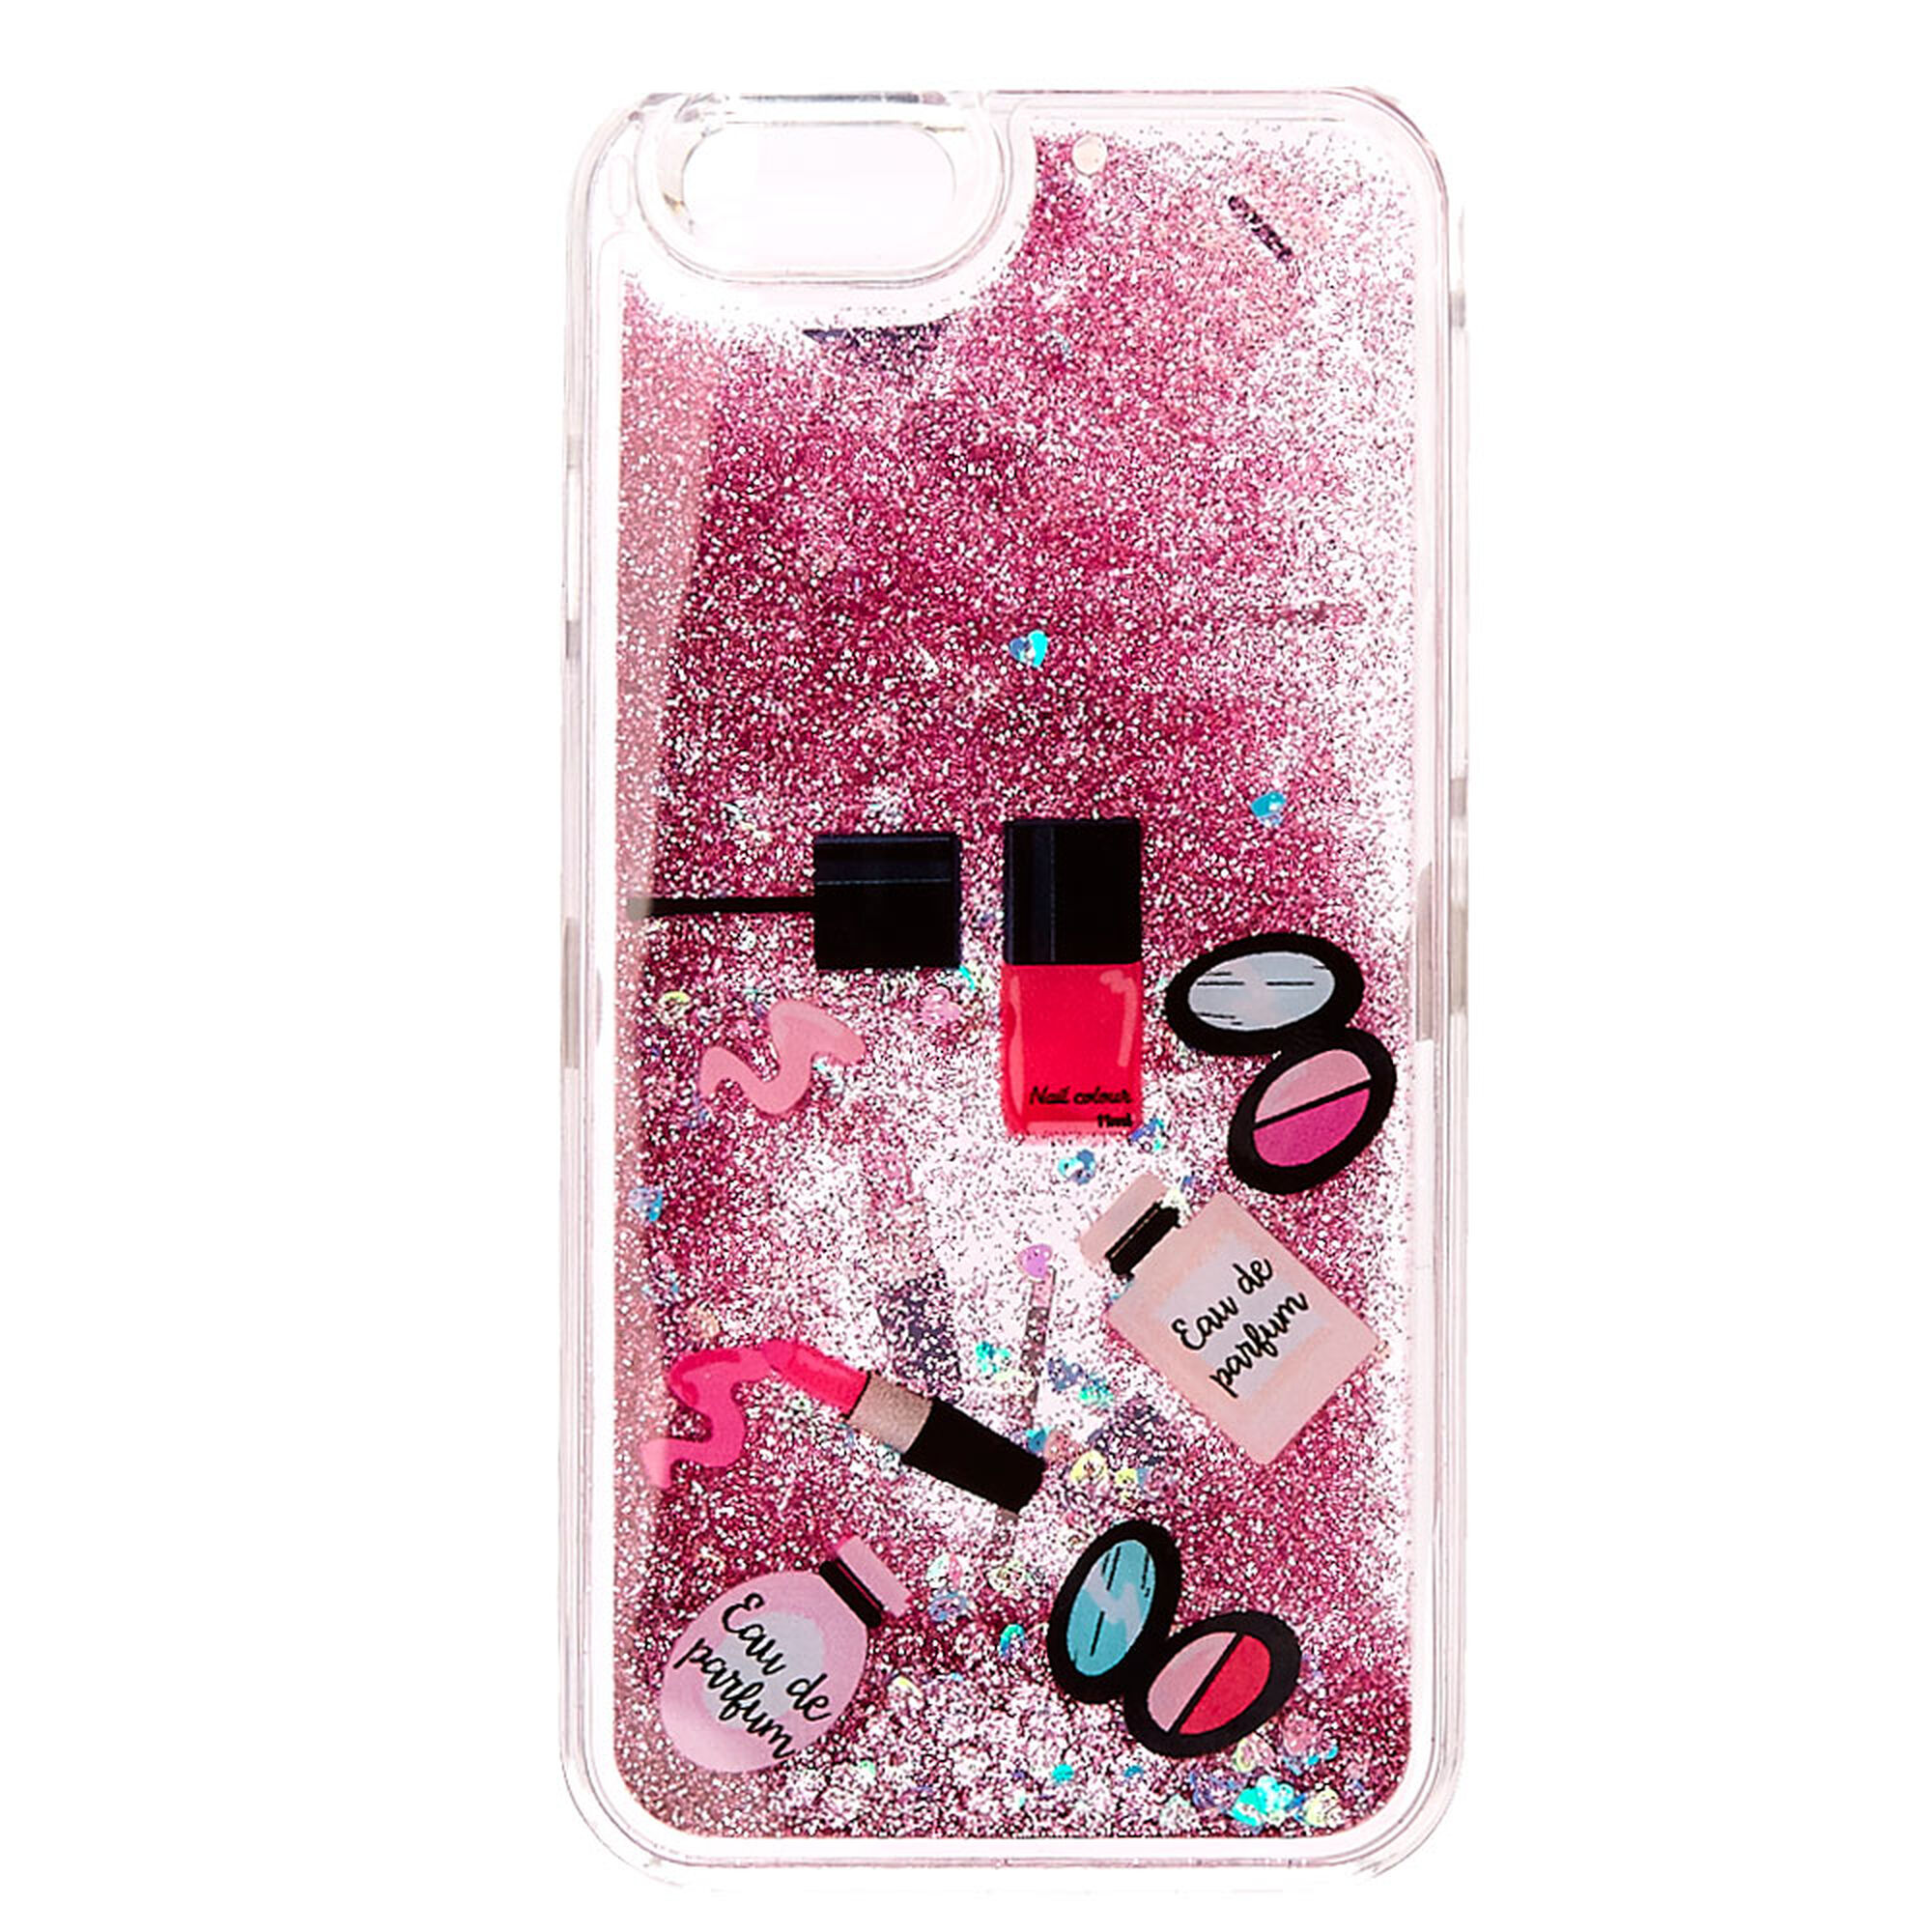 info for 62484 7bdcc Beauty Glitter Liquid Filled Phone Case- Fits iPhone 6/6S